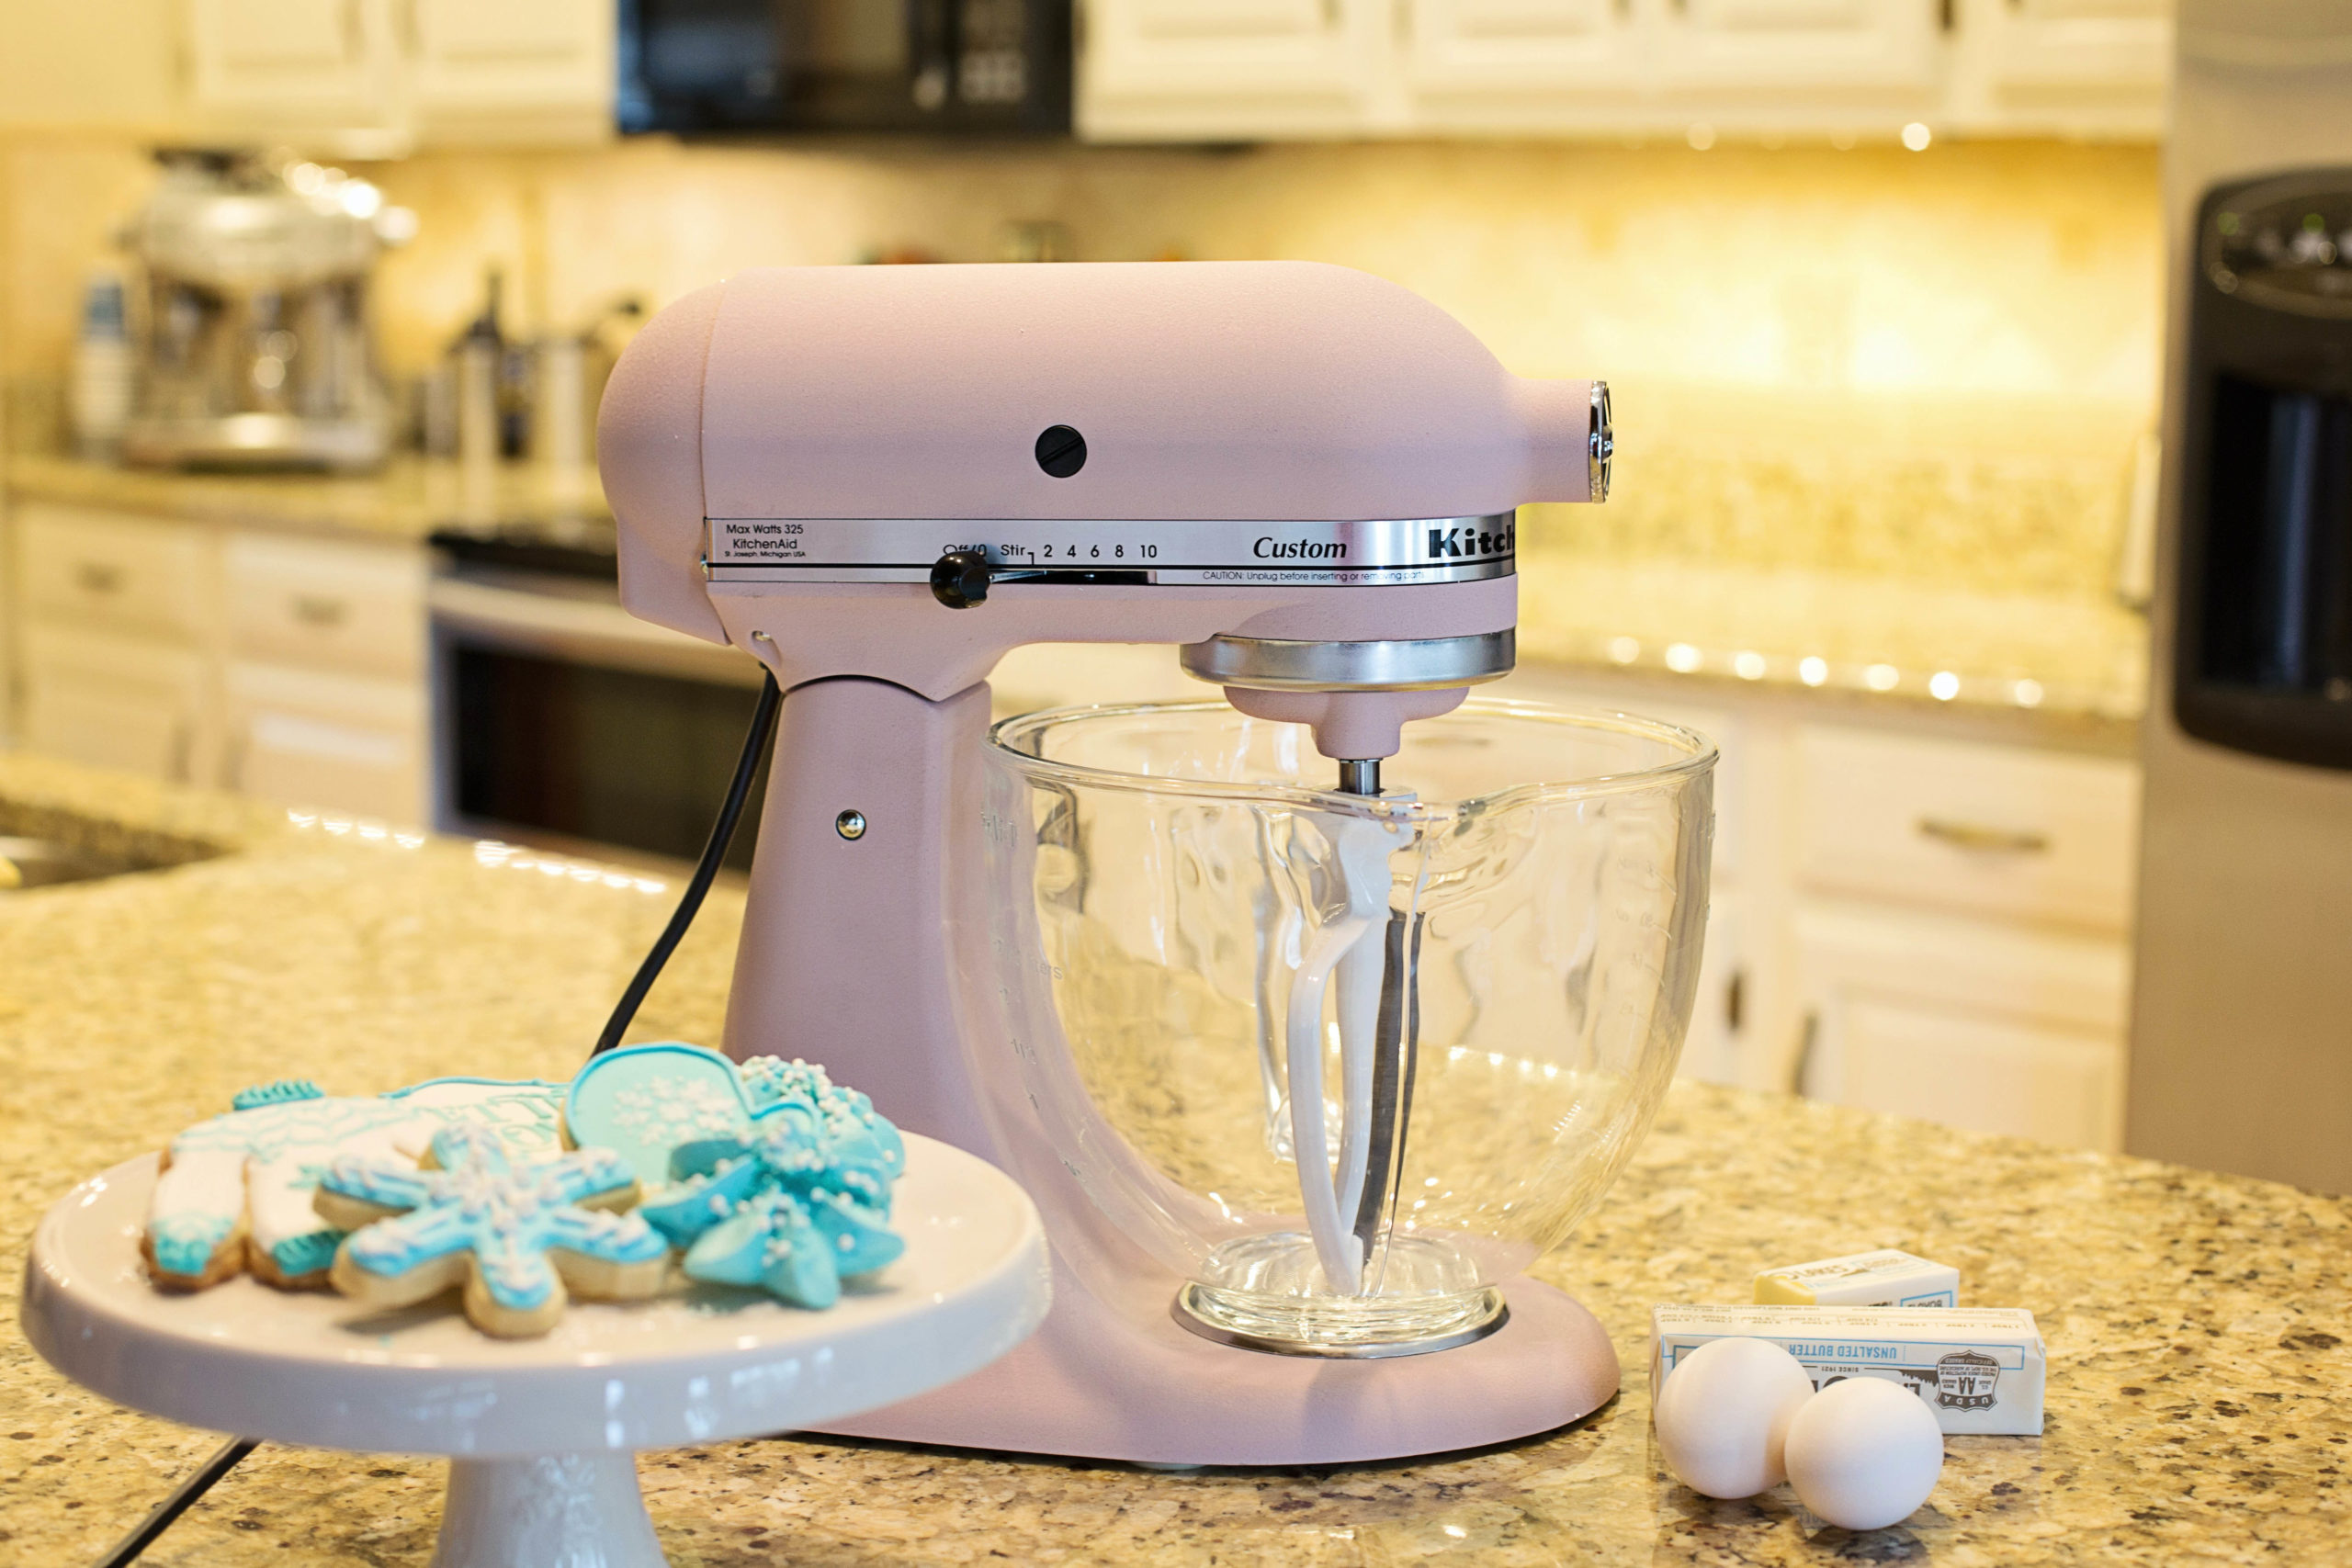 A guide to buying and using a mixer effectively.